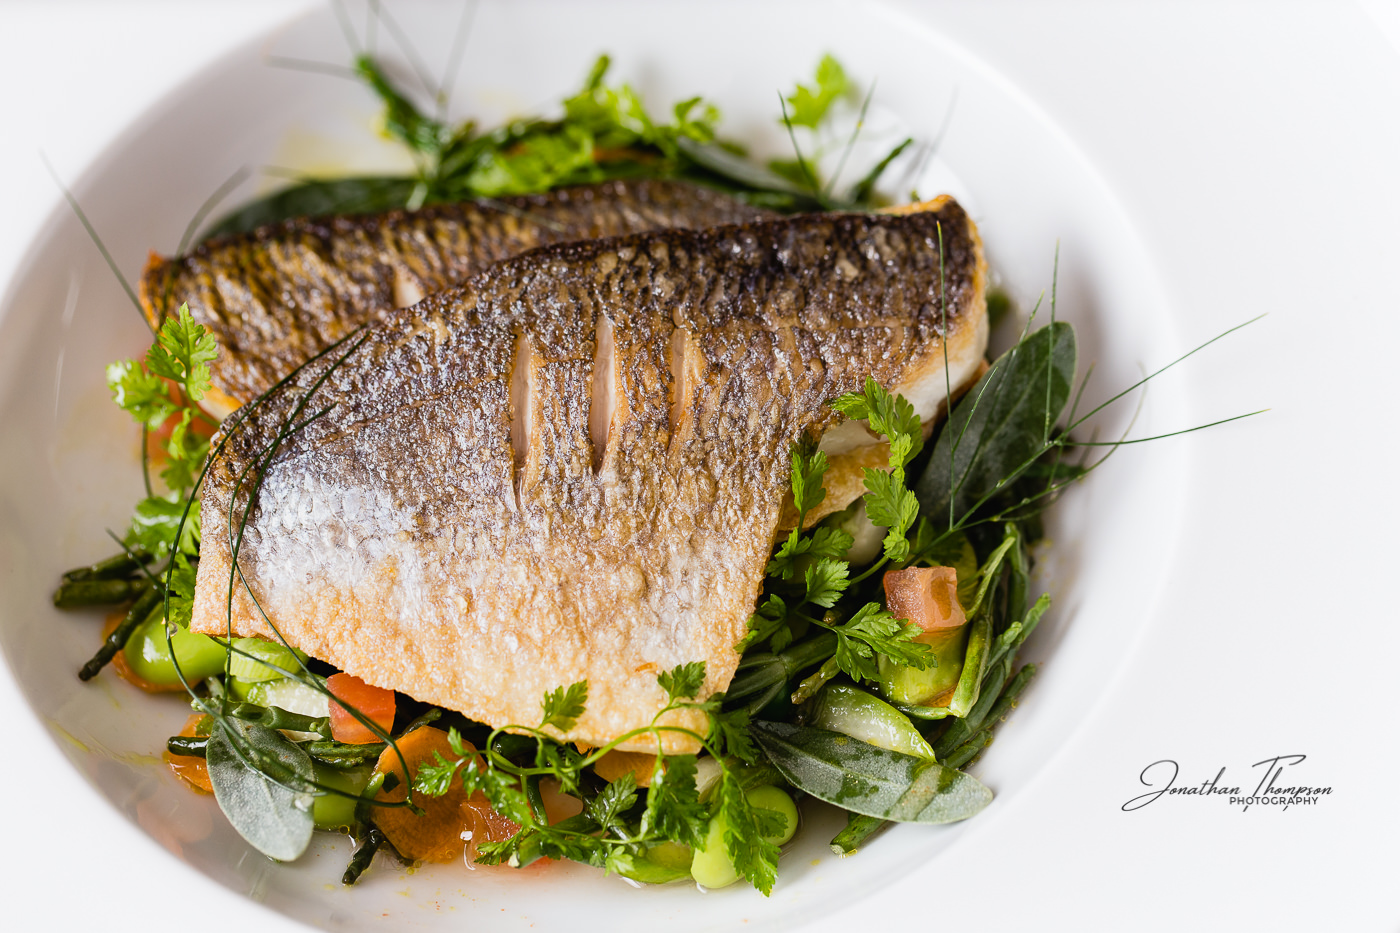 Beautifully cooked fish on a bed of green salad, herbs and vegetables. The fish skin is scored with amazing texture. Served in a white bowl from The Oxford Blue Pub